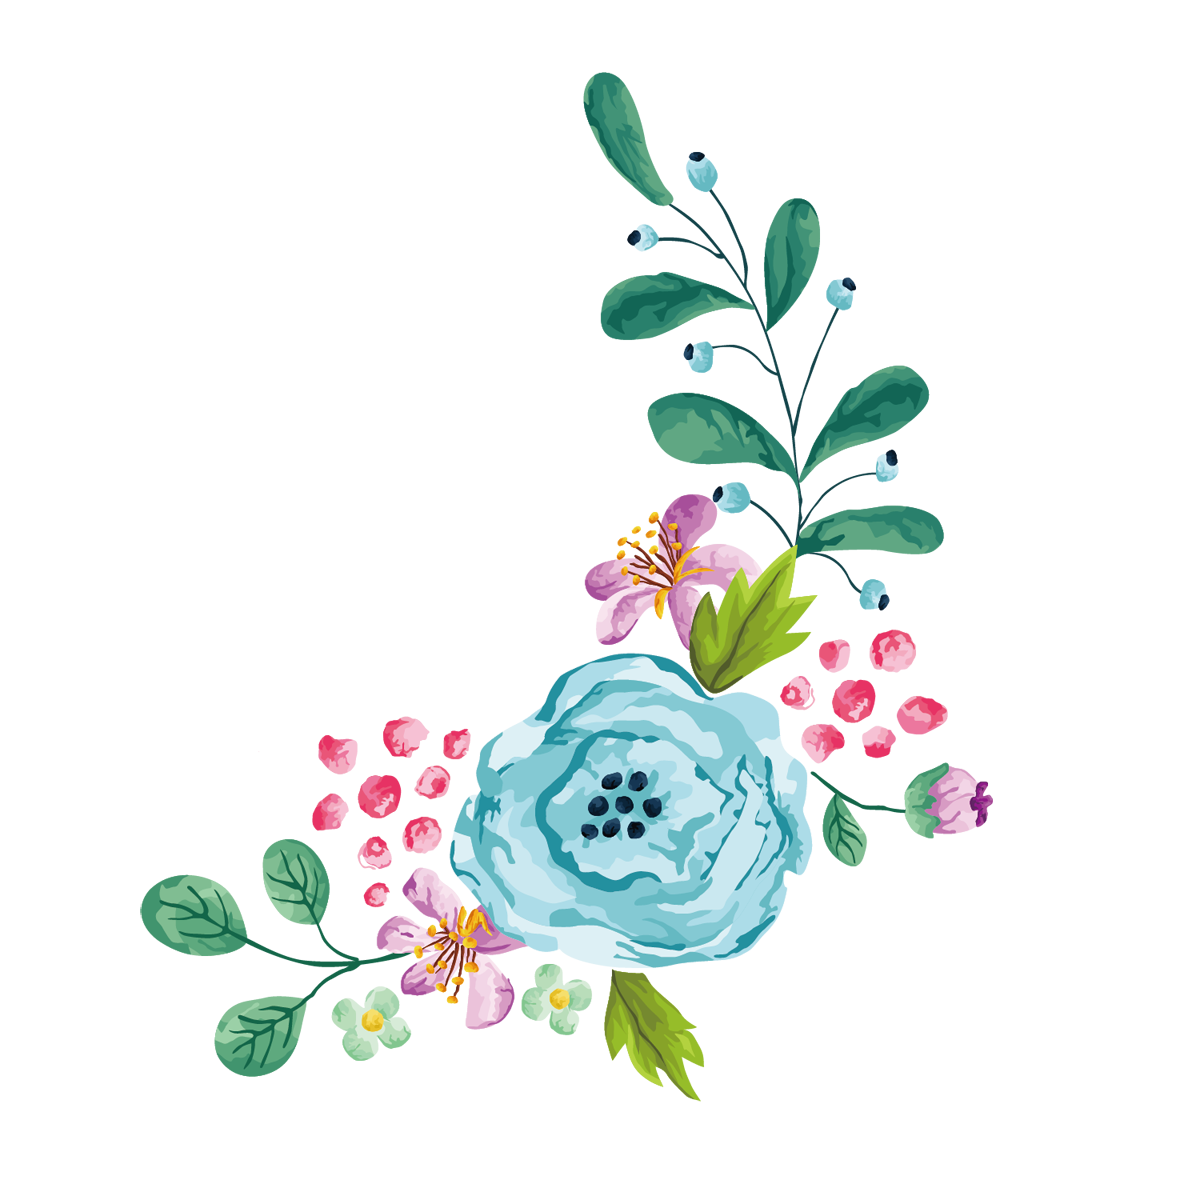 Peoplepng com. Blue watercolor flower png svg black and white download